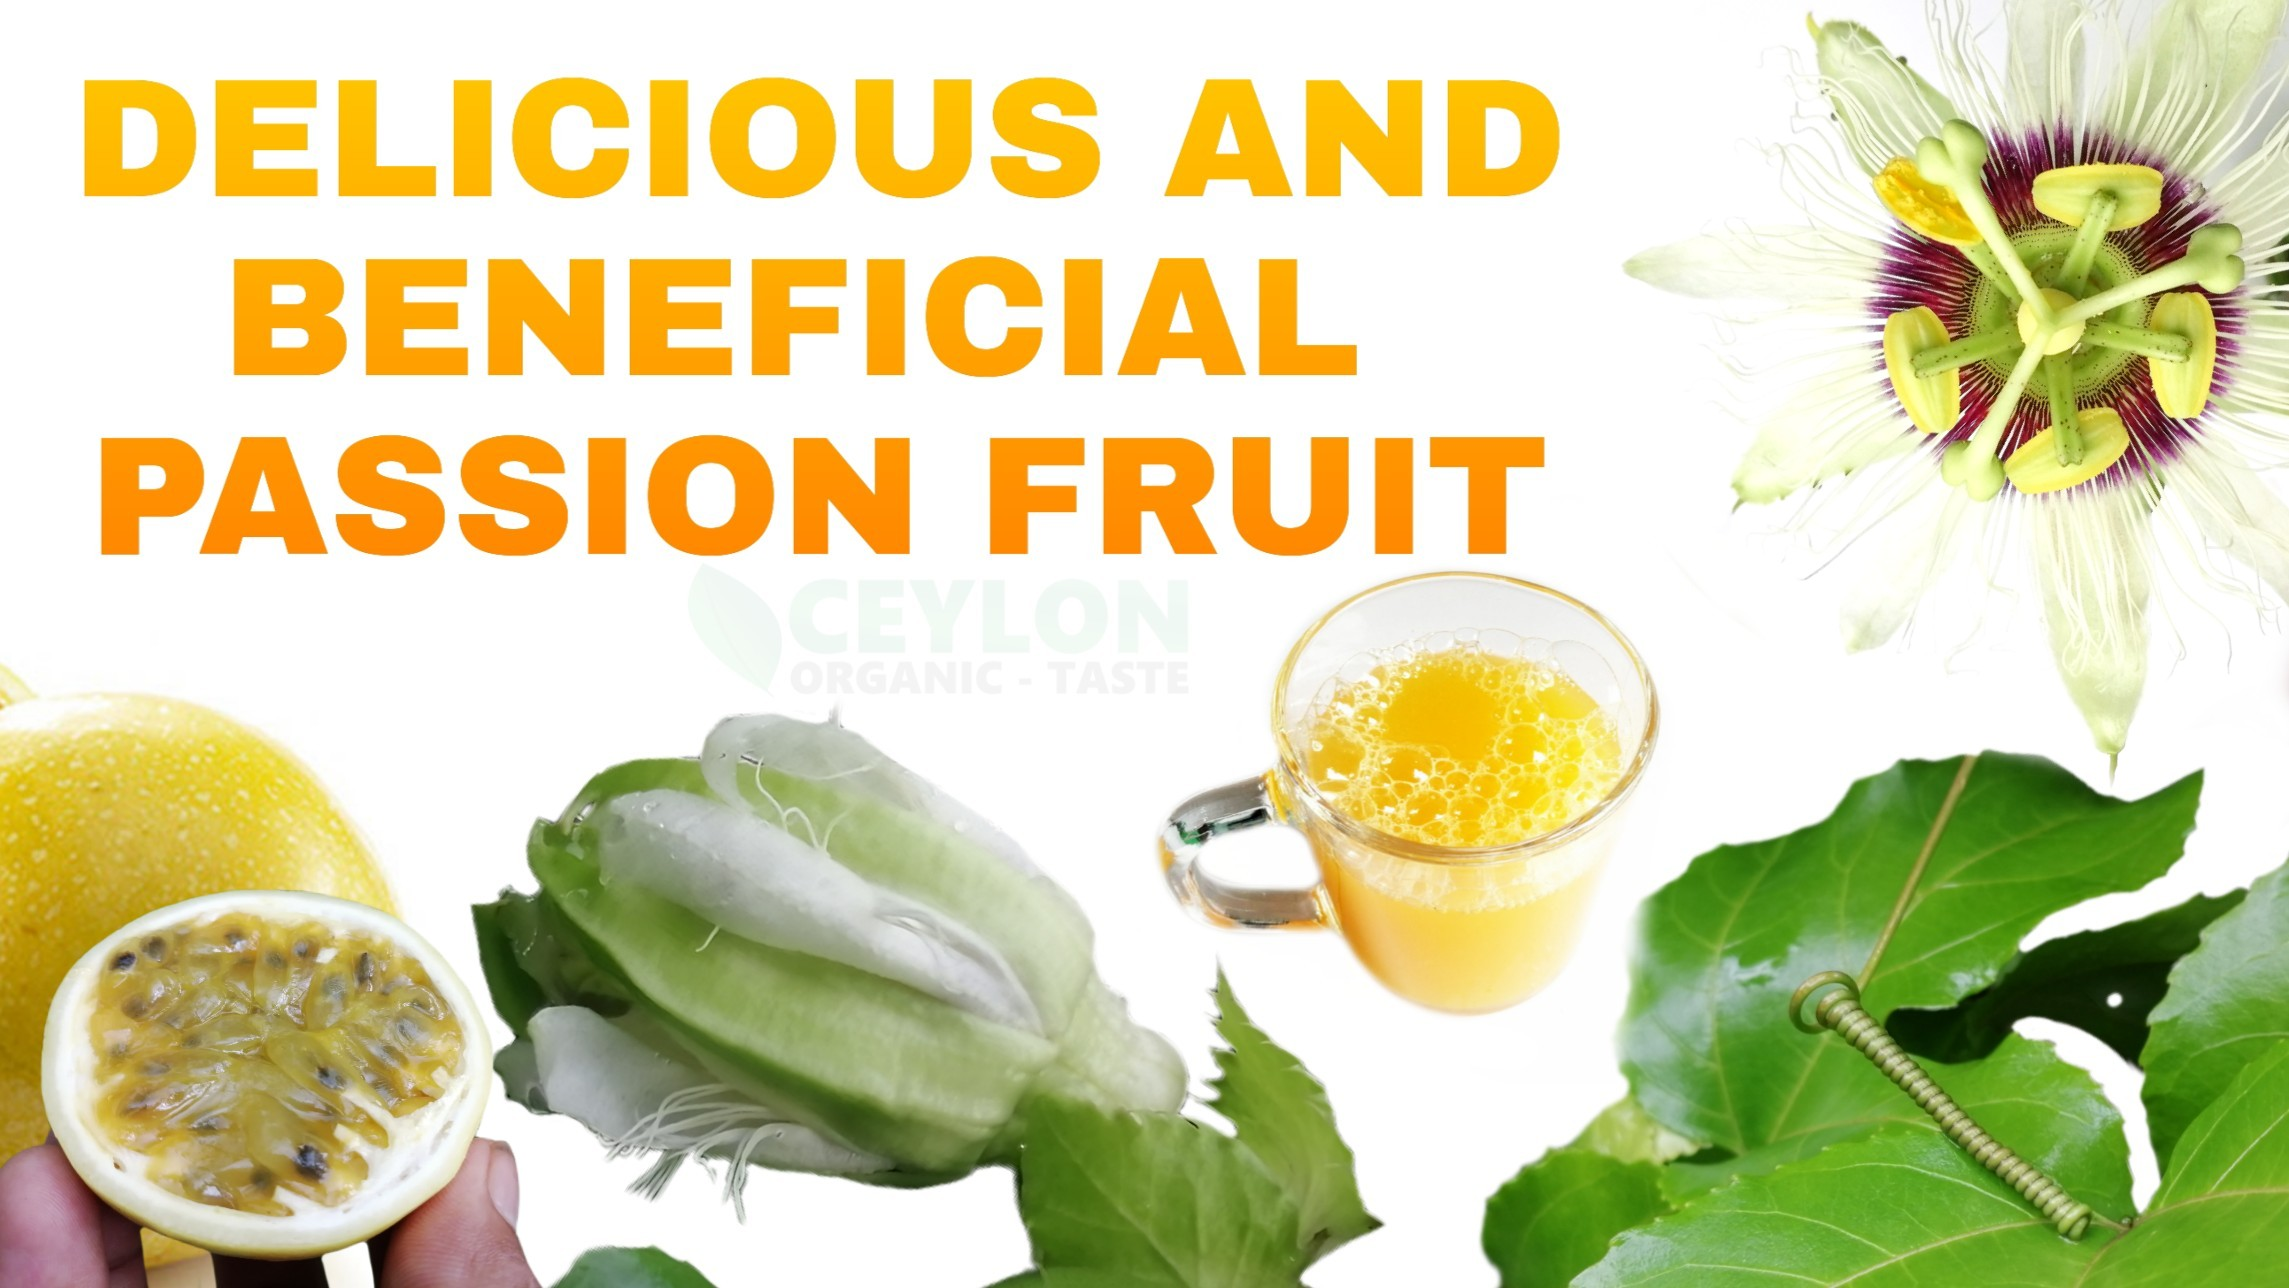 Delicious and beneficial Passion fruit